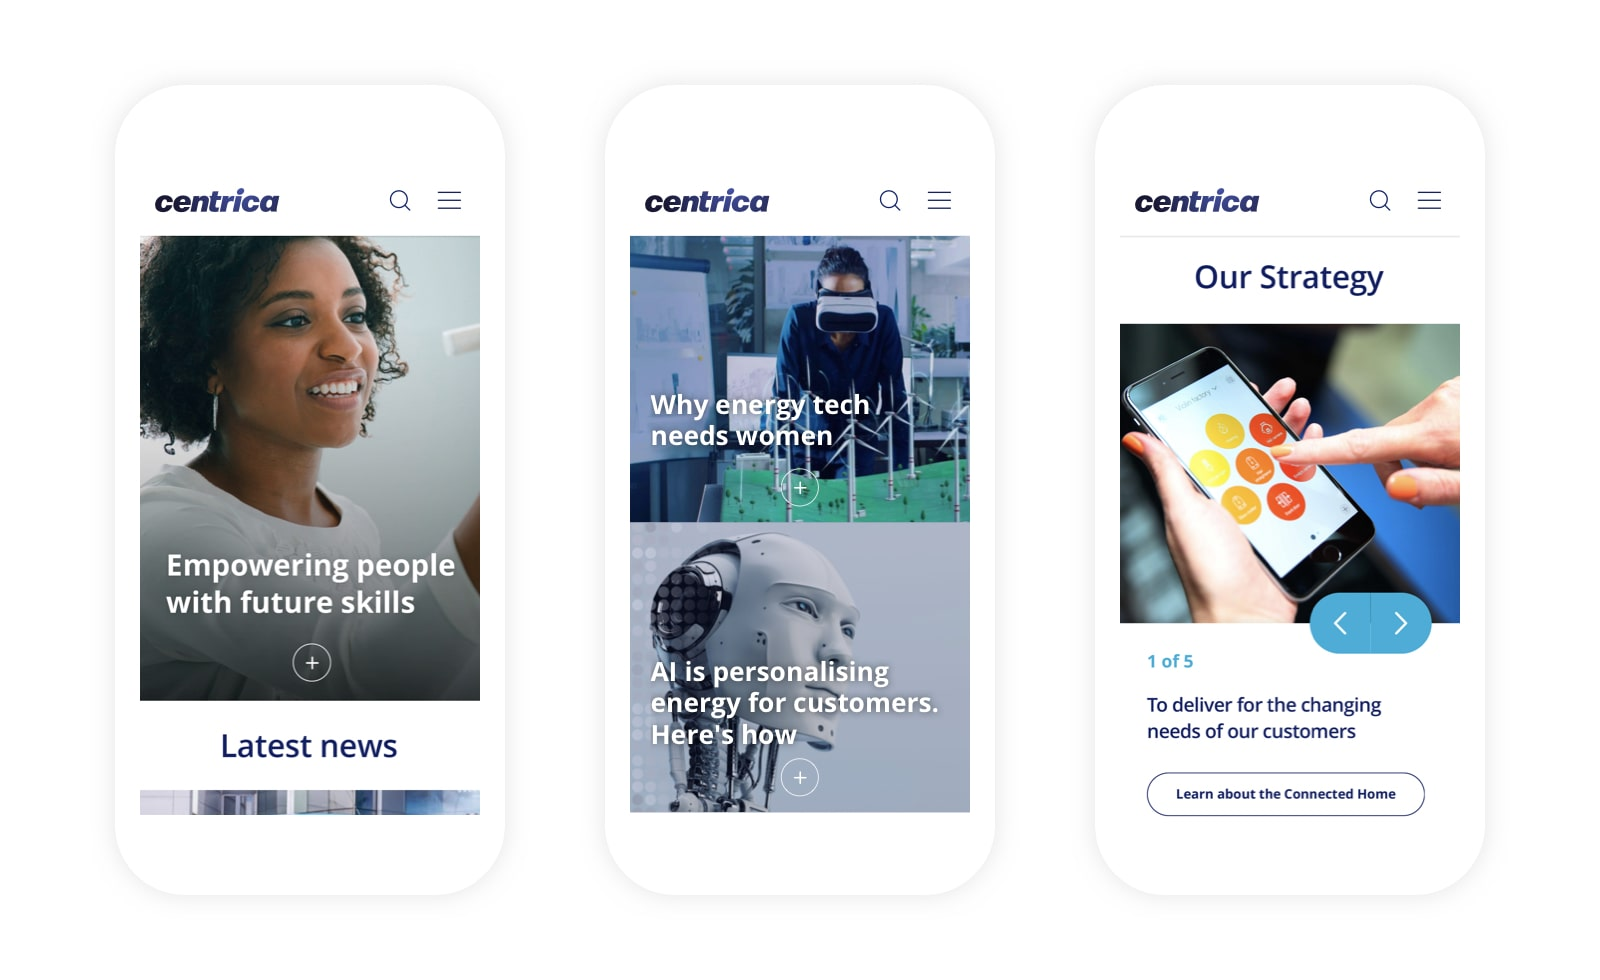 3 mobile designs of the new Centrica website